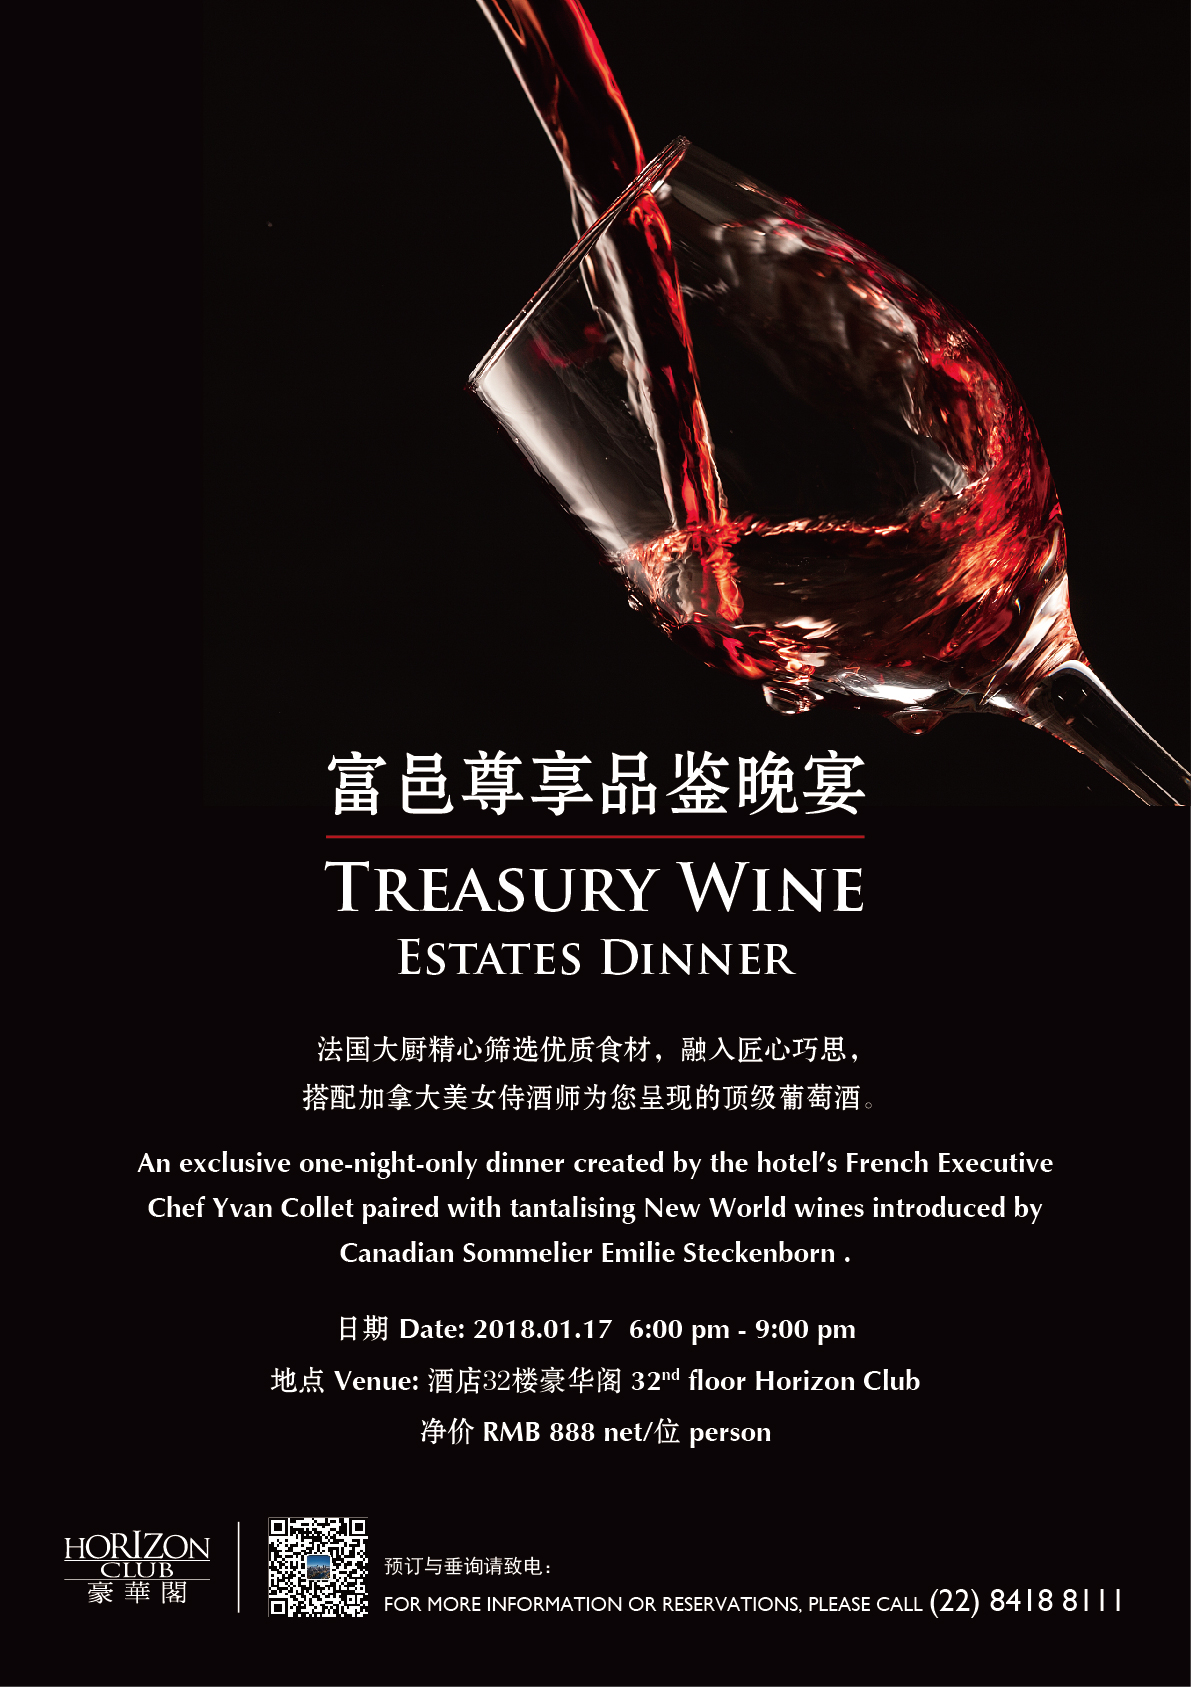 20180108treasury wine estates dinnerposter